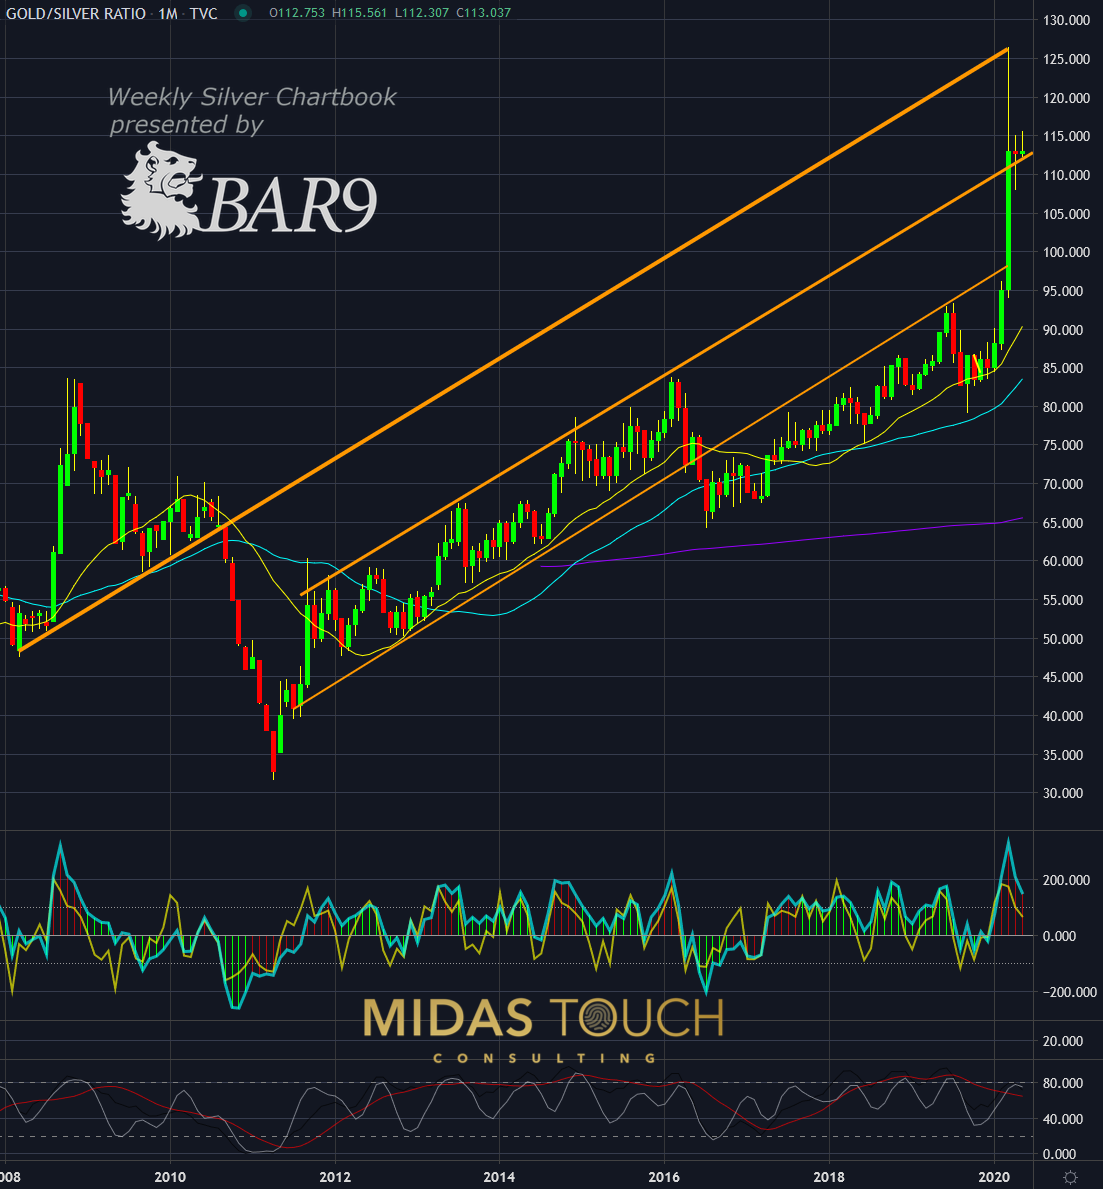 Gold to Silver Ratio, monthly chart as of May 6th, 2020